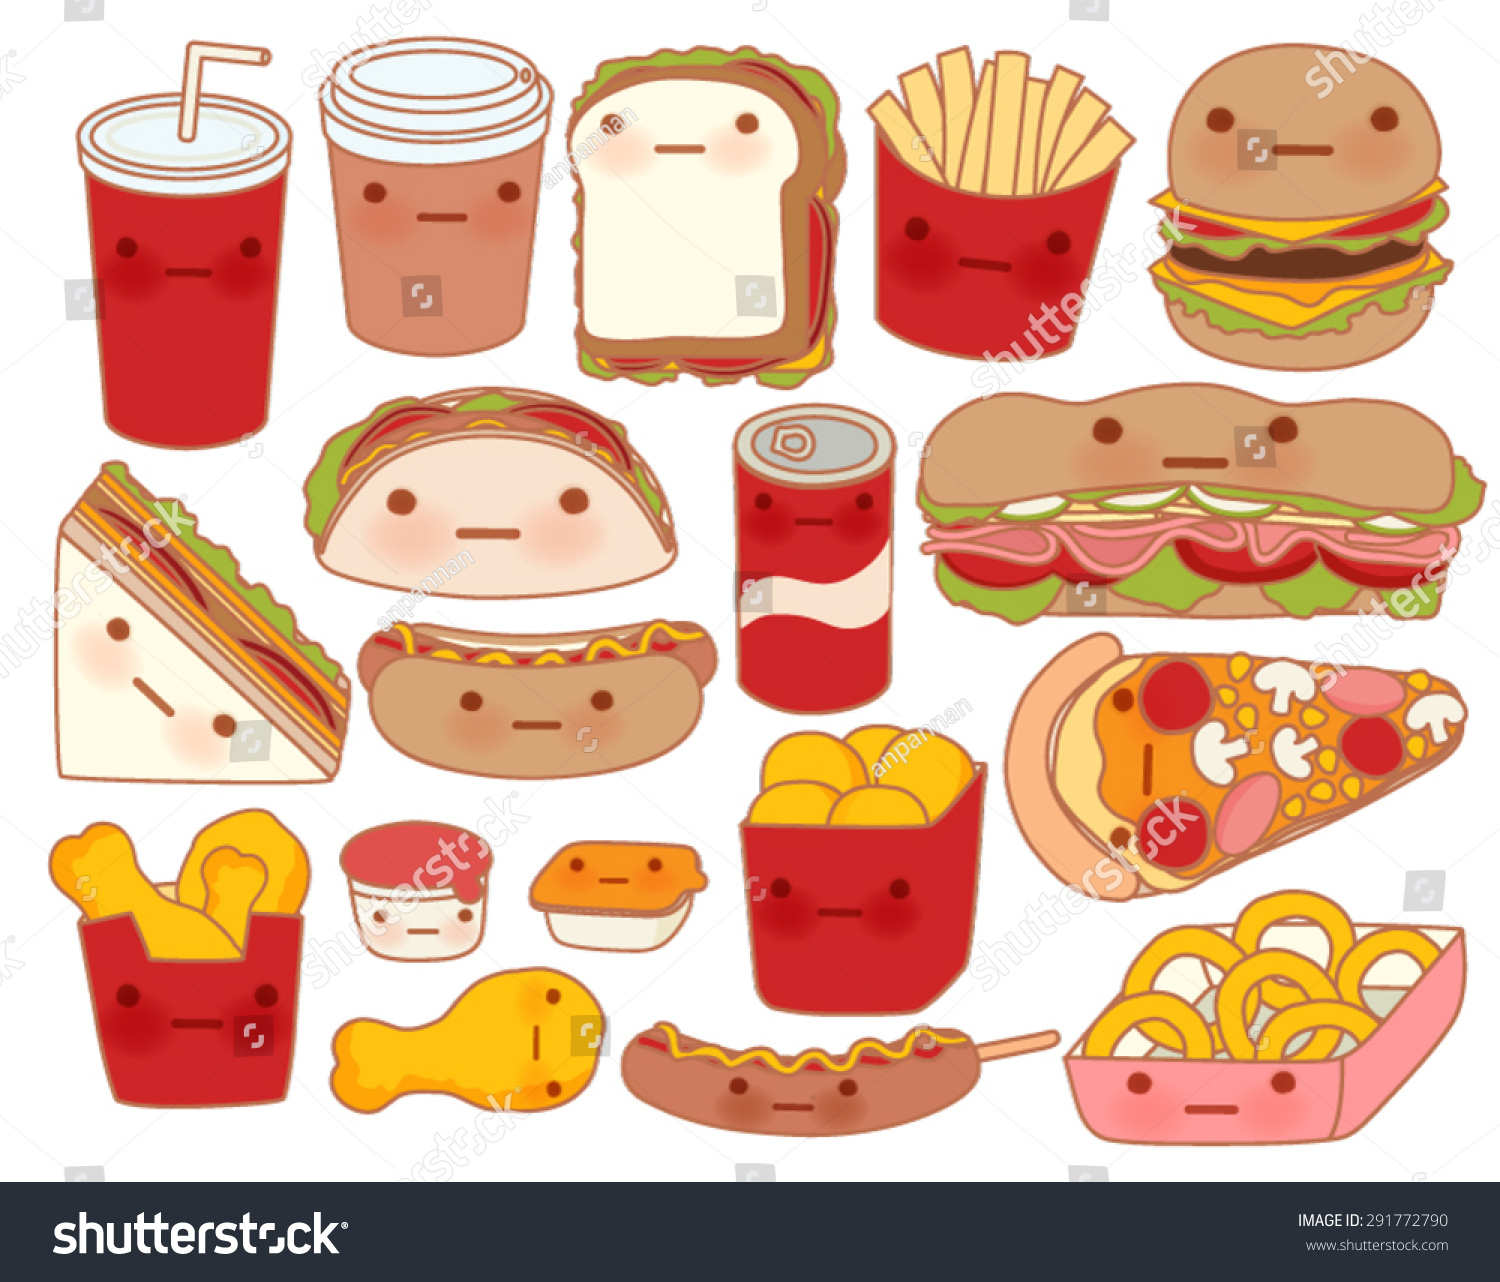 Cute Chicken Nugget Wallpaper Collection Lovely Baby Food Doodle Icon Stock Vector